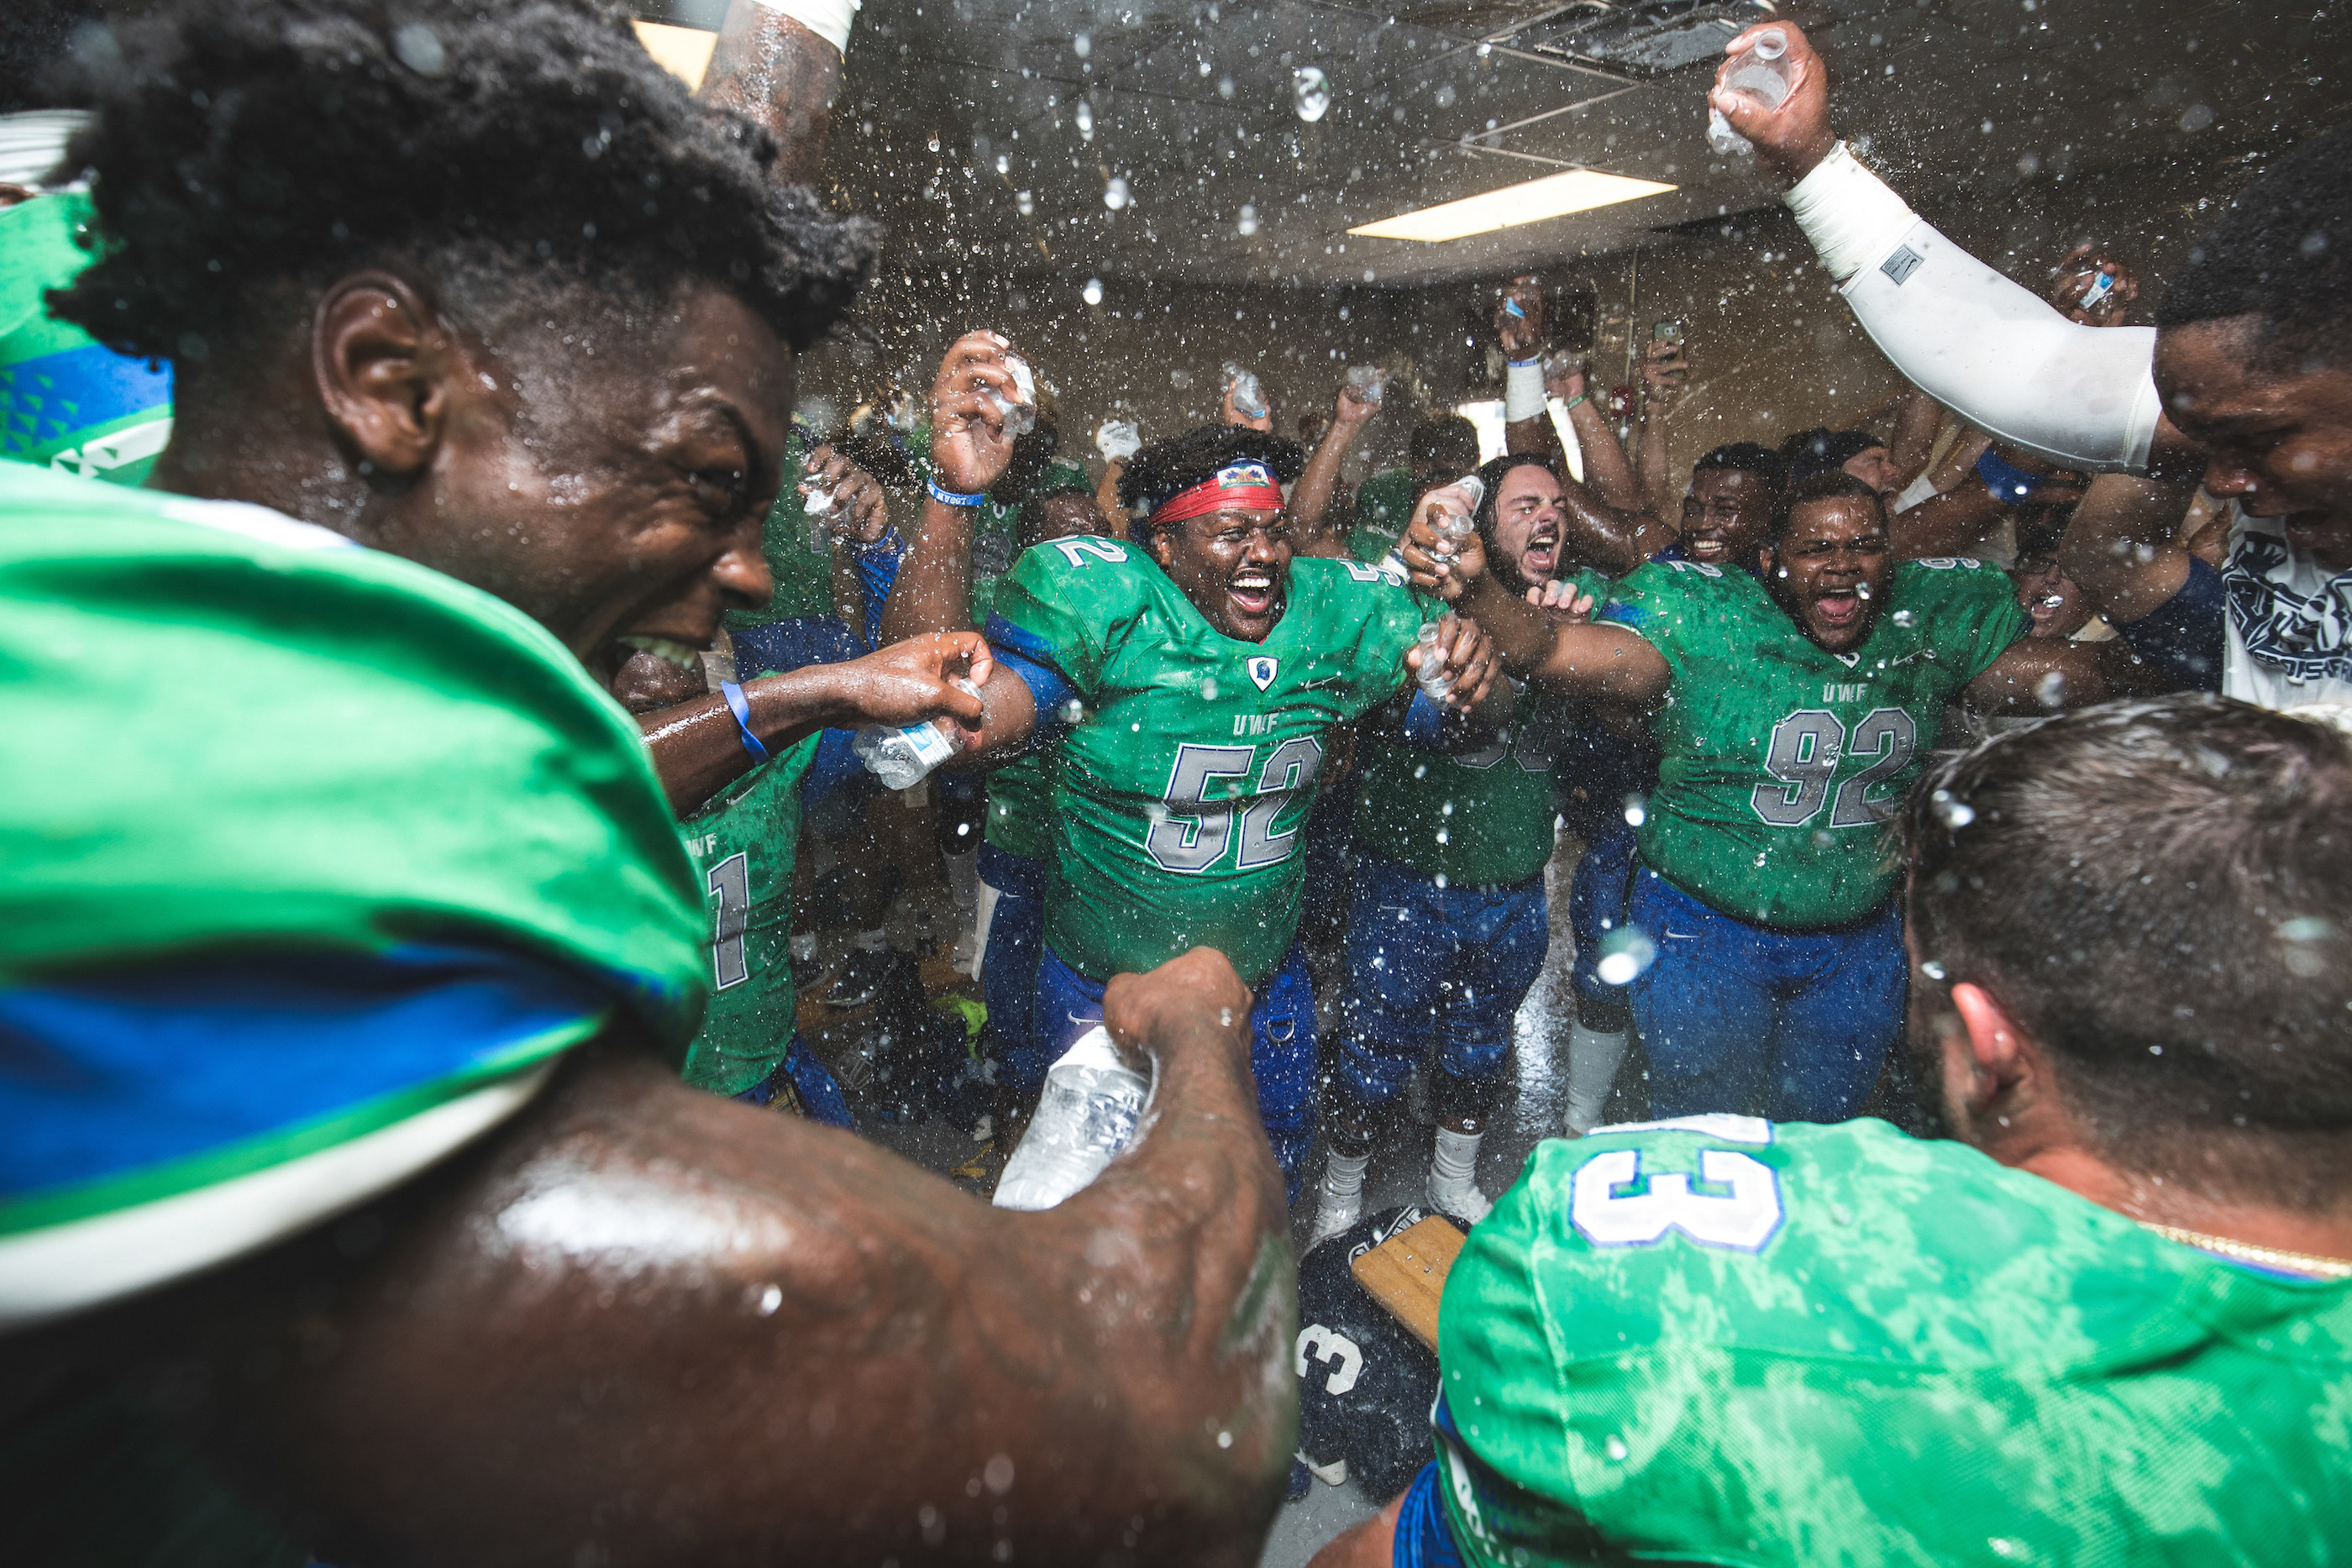 Football players celebrate a victory in their locker room after a game